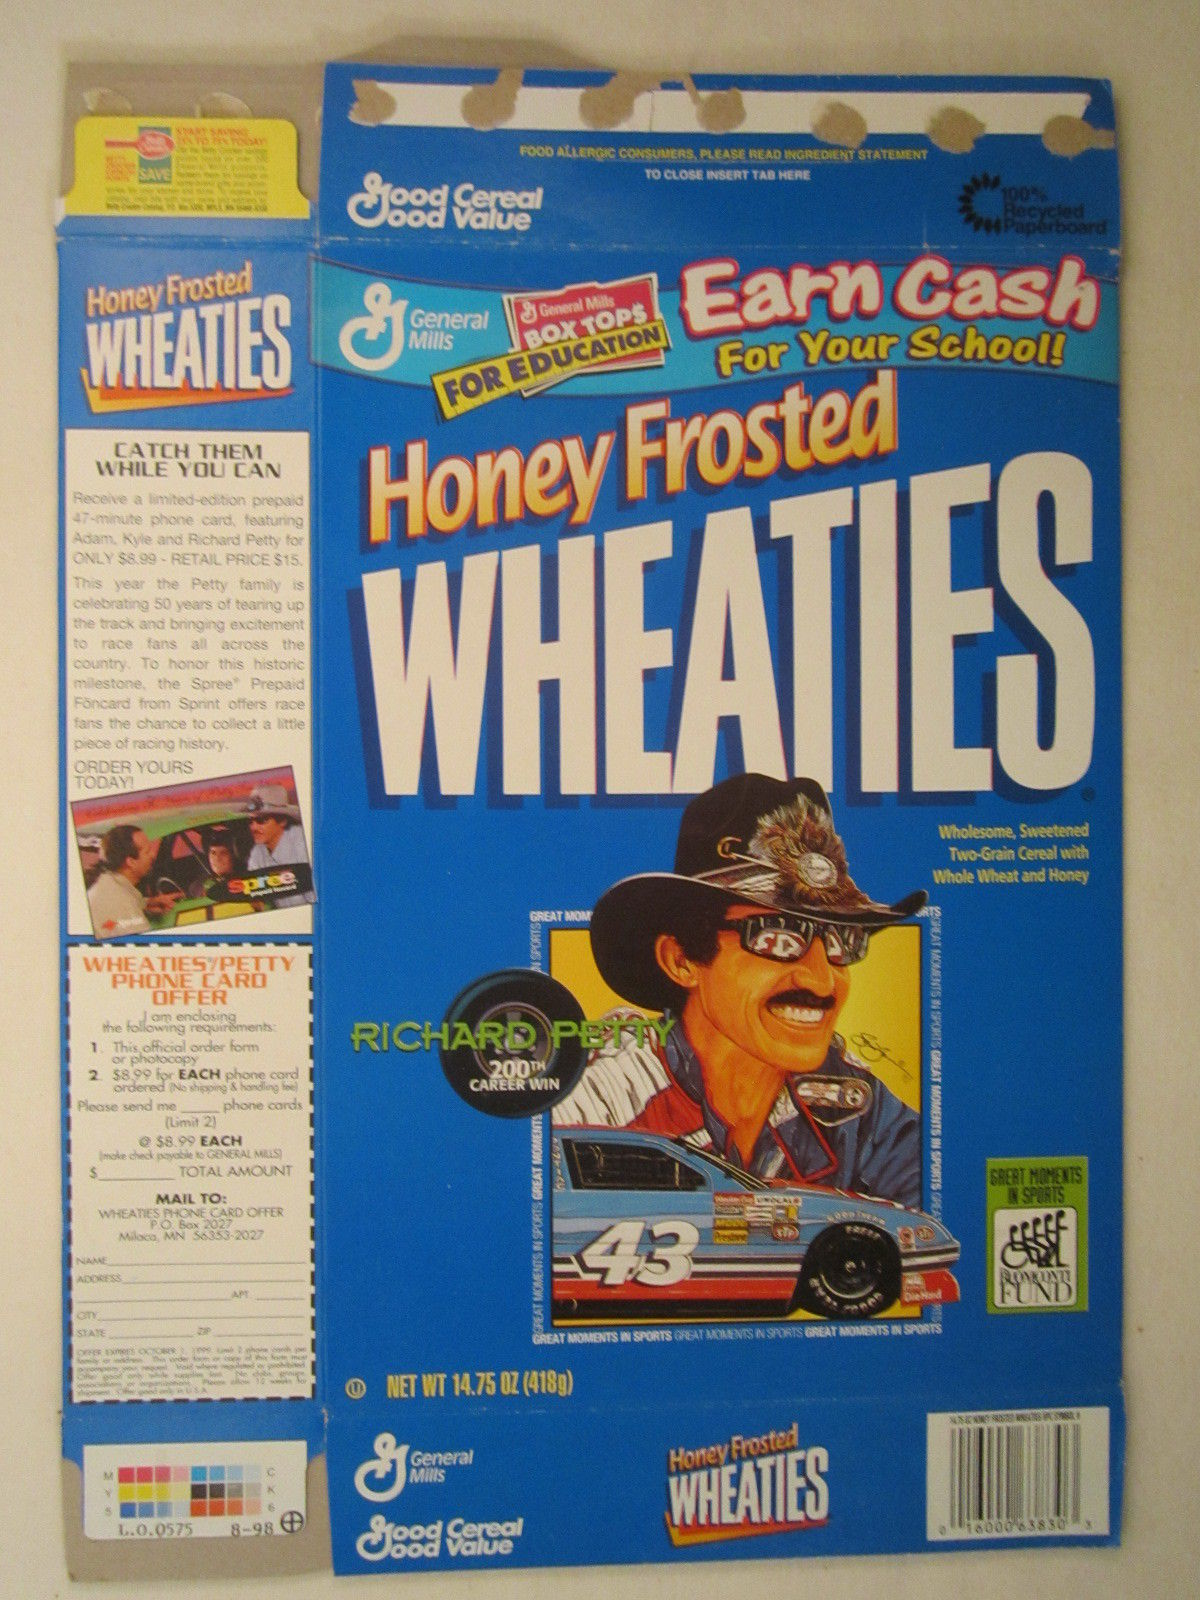 Primary image for Empty WHEATIES Box 1998 14.75oz RICHARD PETTY 200th Career Win [Z202d5]